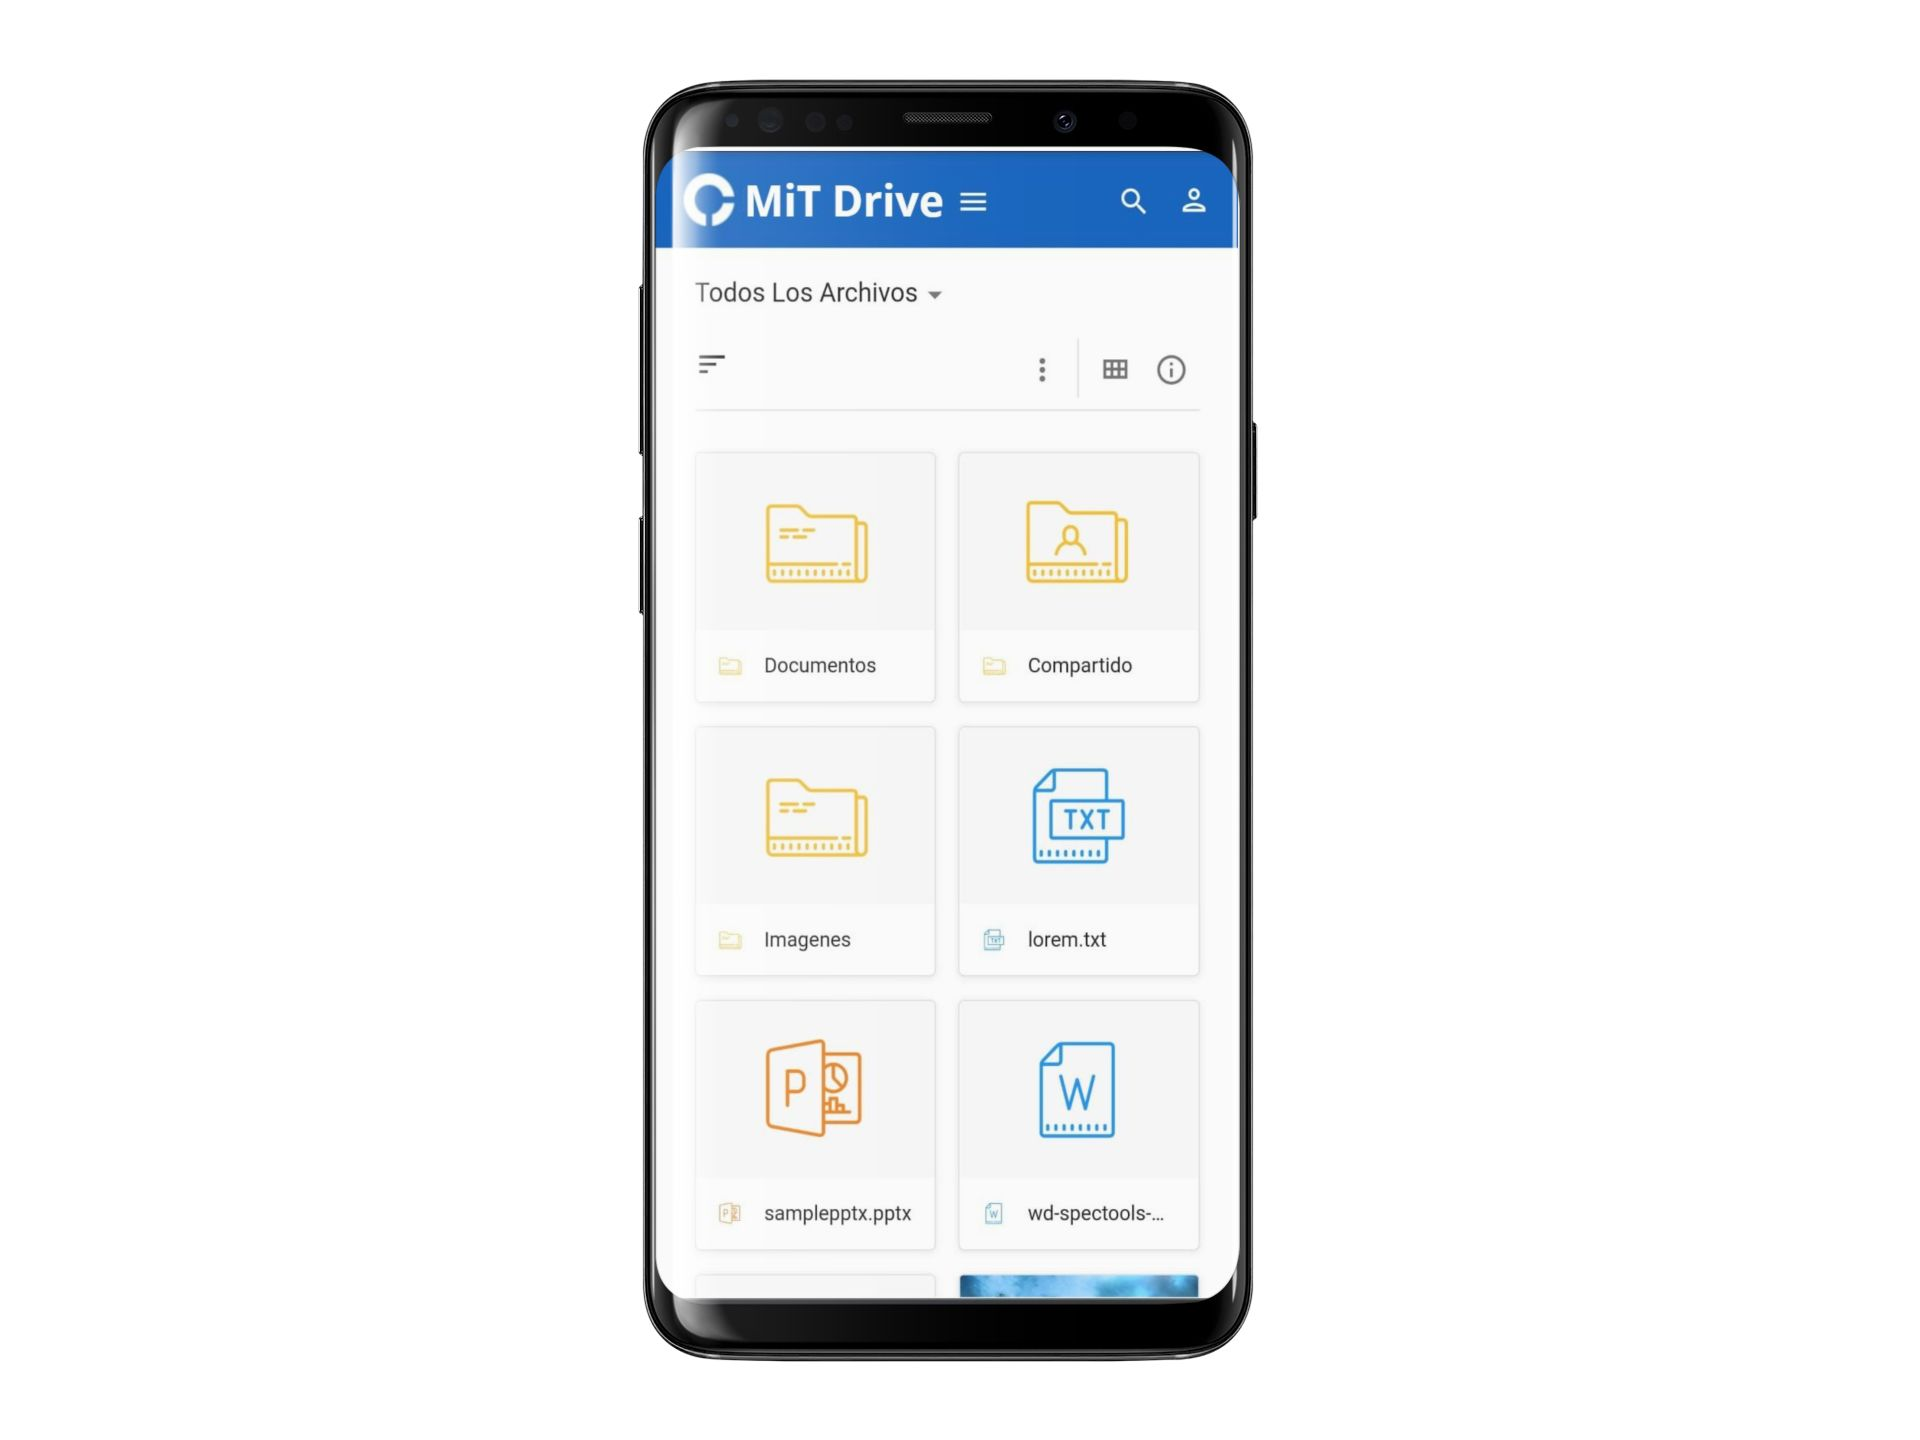 galaxy s9 mockup template against transparent background a19508 2 MiT Drive